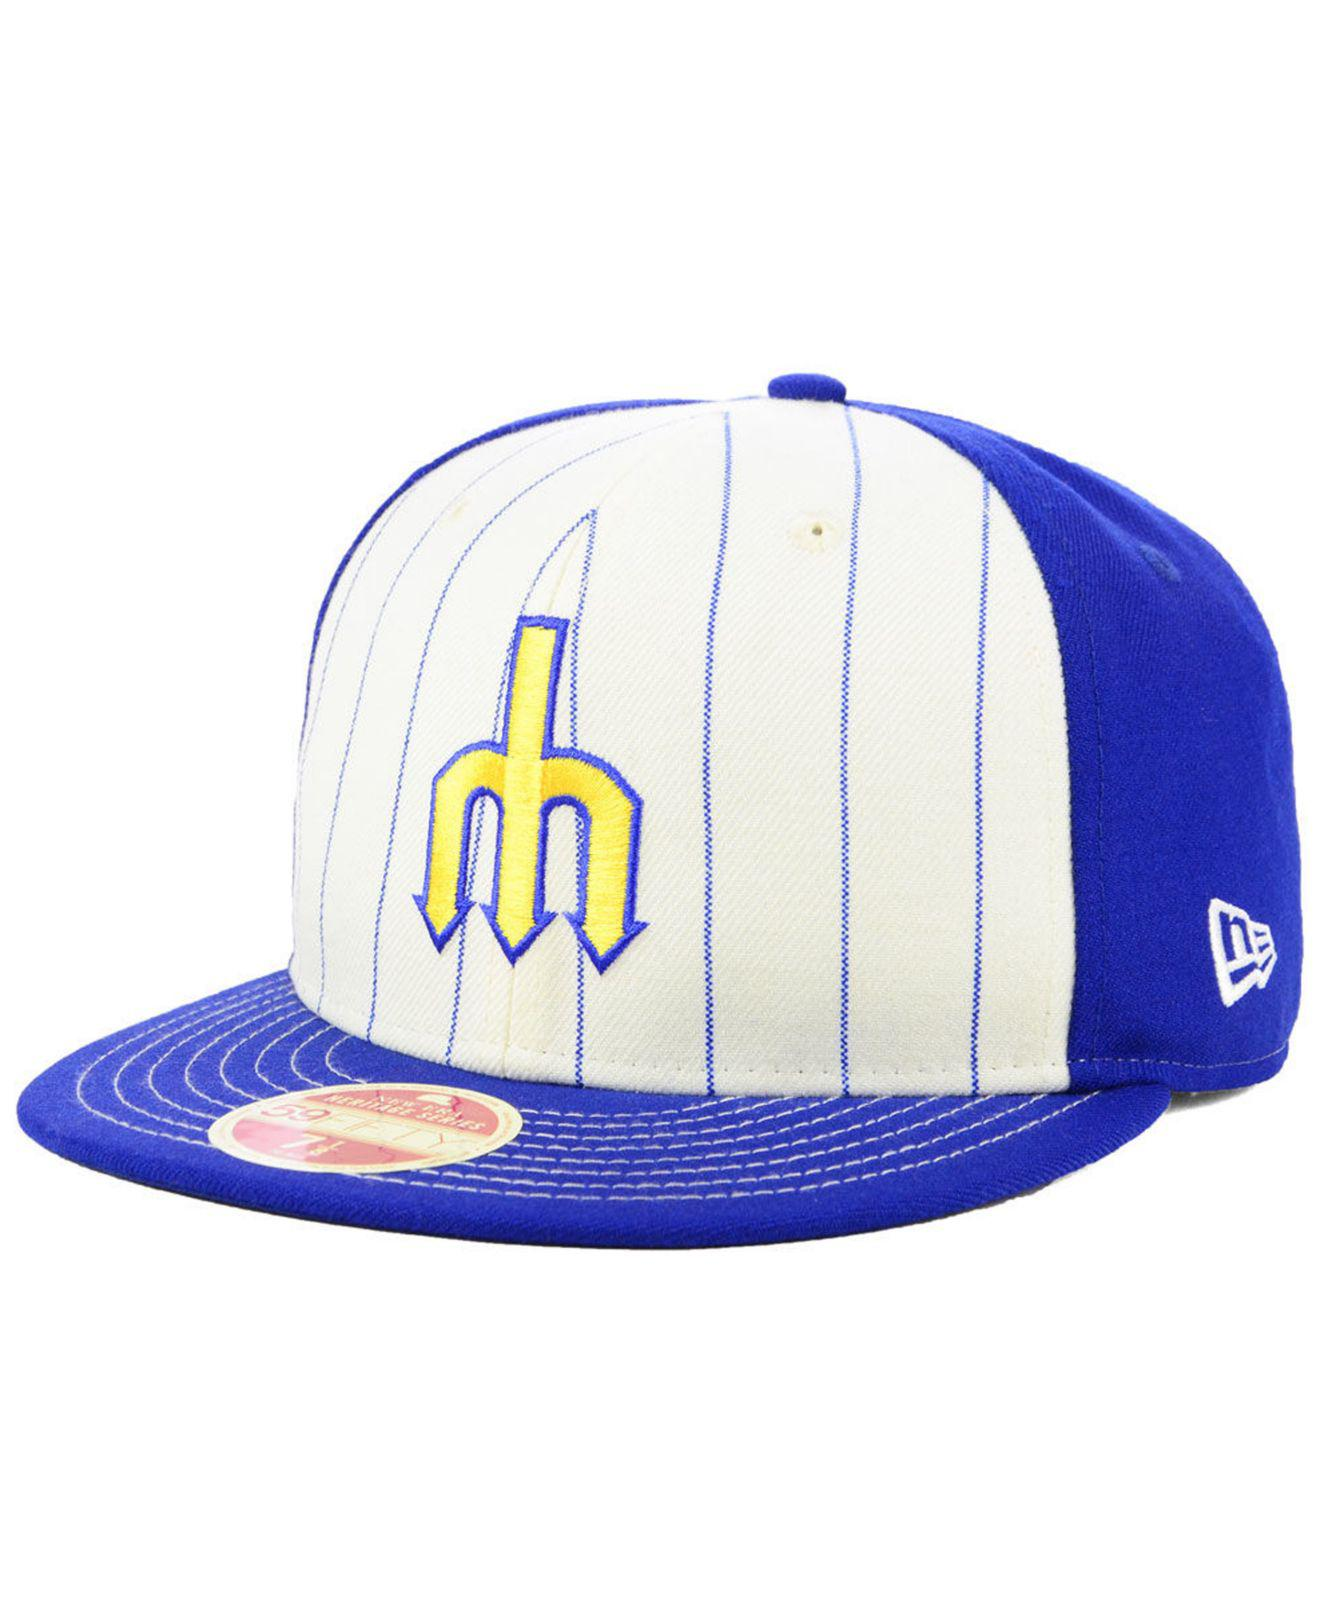 new product 6c3cf 8867e germany ktz. mens blue seattle mariners vintage front 59fifty fitted cap  cb9eb ea06b